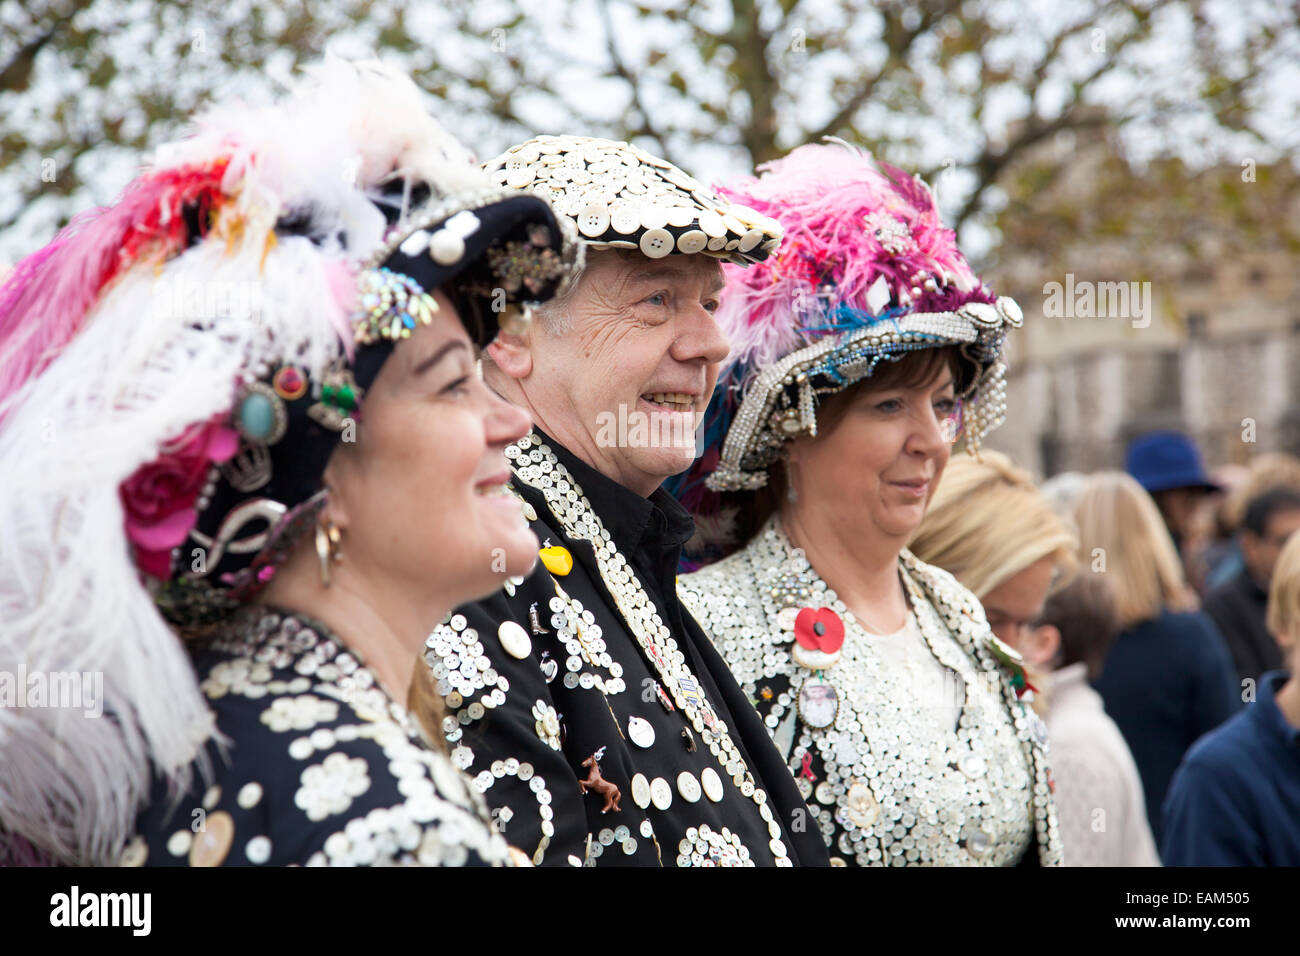 Pearly Kings and Queens by the Tower of London during the Blood Swept Lands and Seas of Red poppy installation 09 - Stock Image